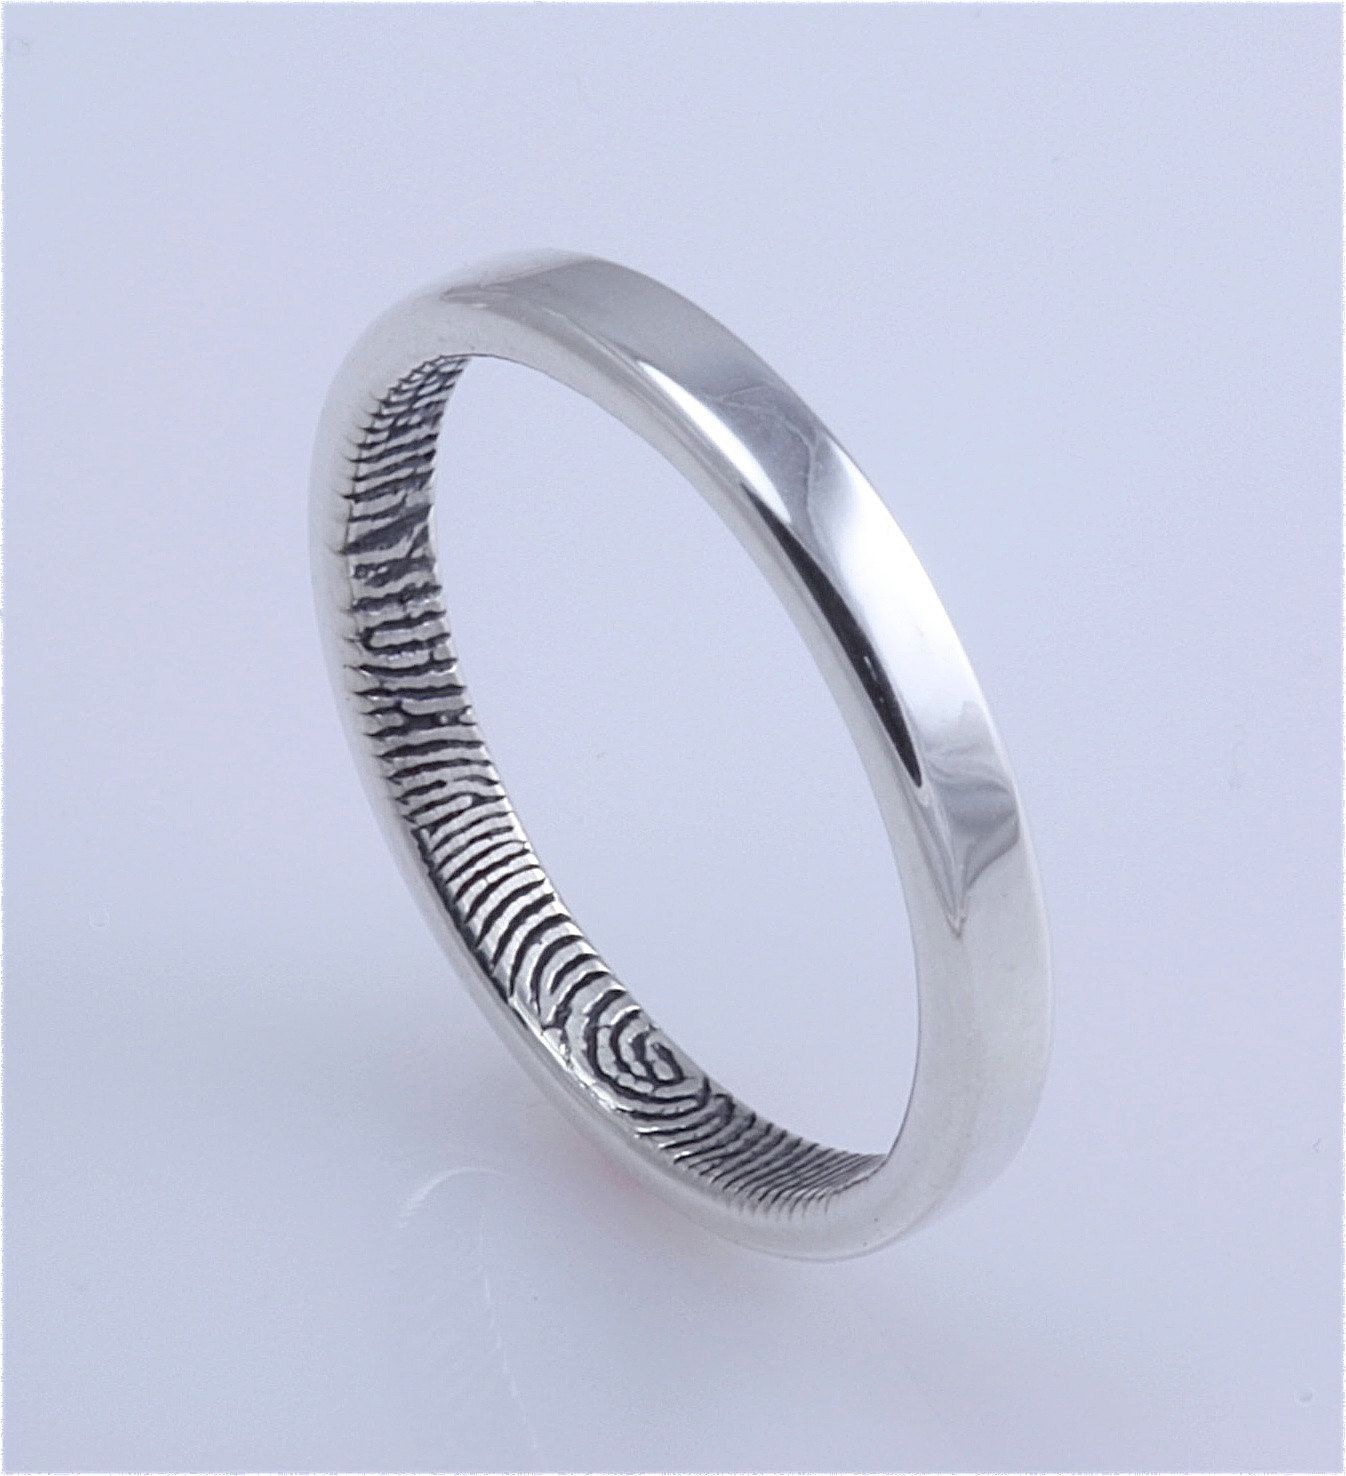 nwexodgxmjg your any weddings they for finger band print engraved titanium set jewelry personalised itm wedding customized of occasion with and great from ring silver are becoming shape choice rings fast fingerprint the dome